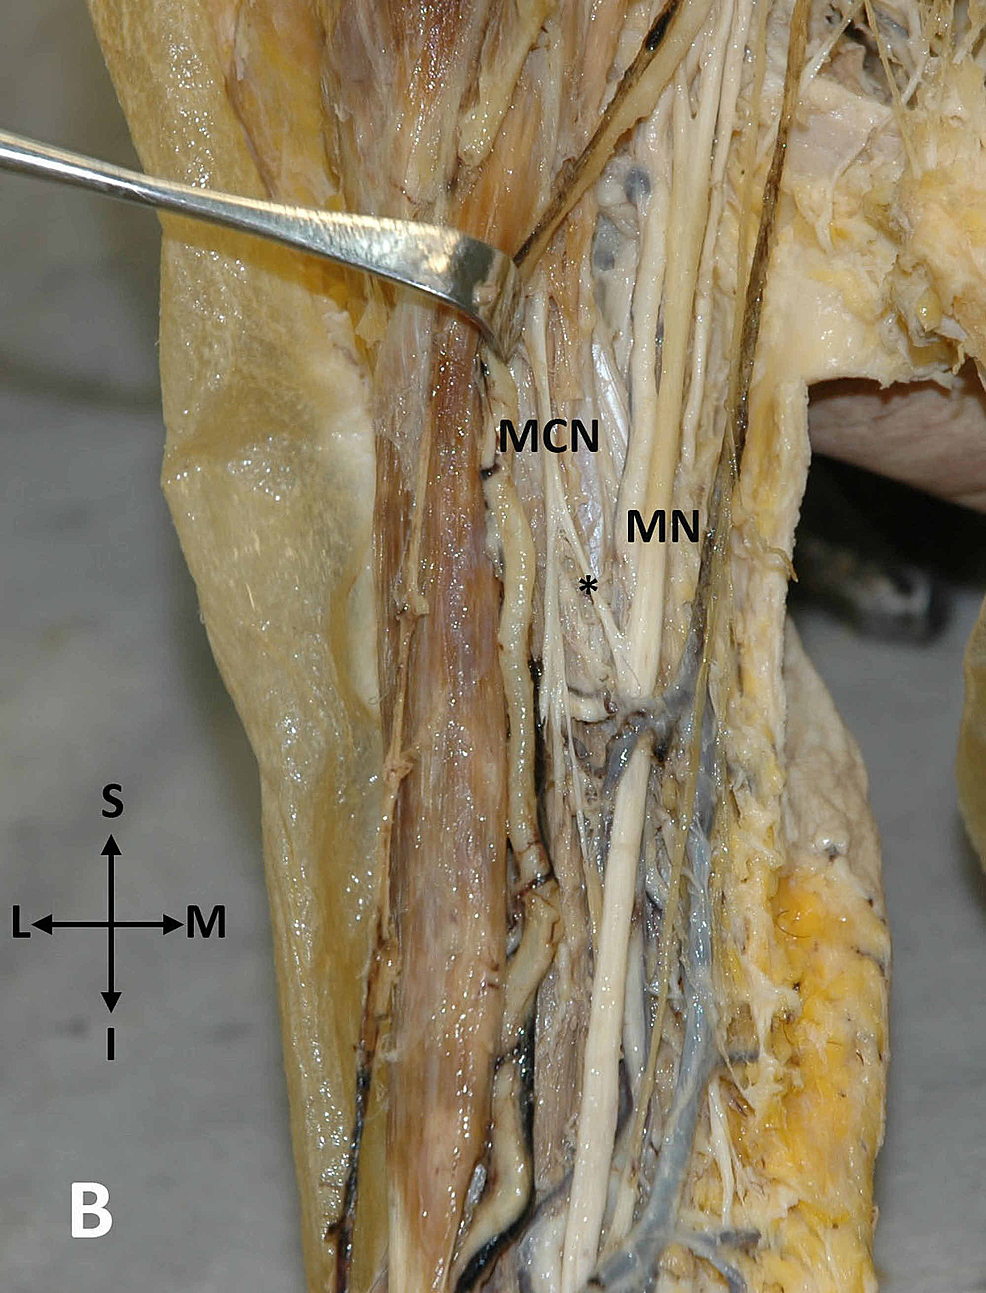 An-anastomosis-between-the-MCN-and-MN-on-the-right-upper-arm